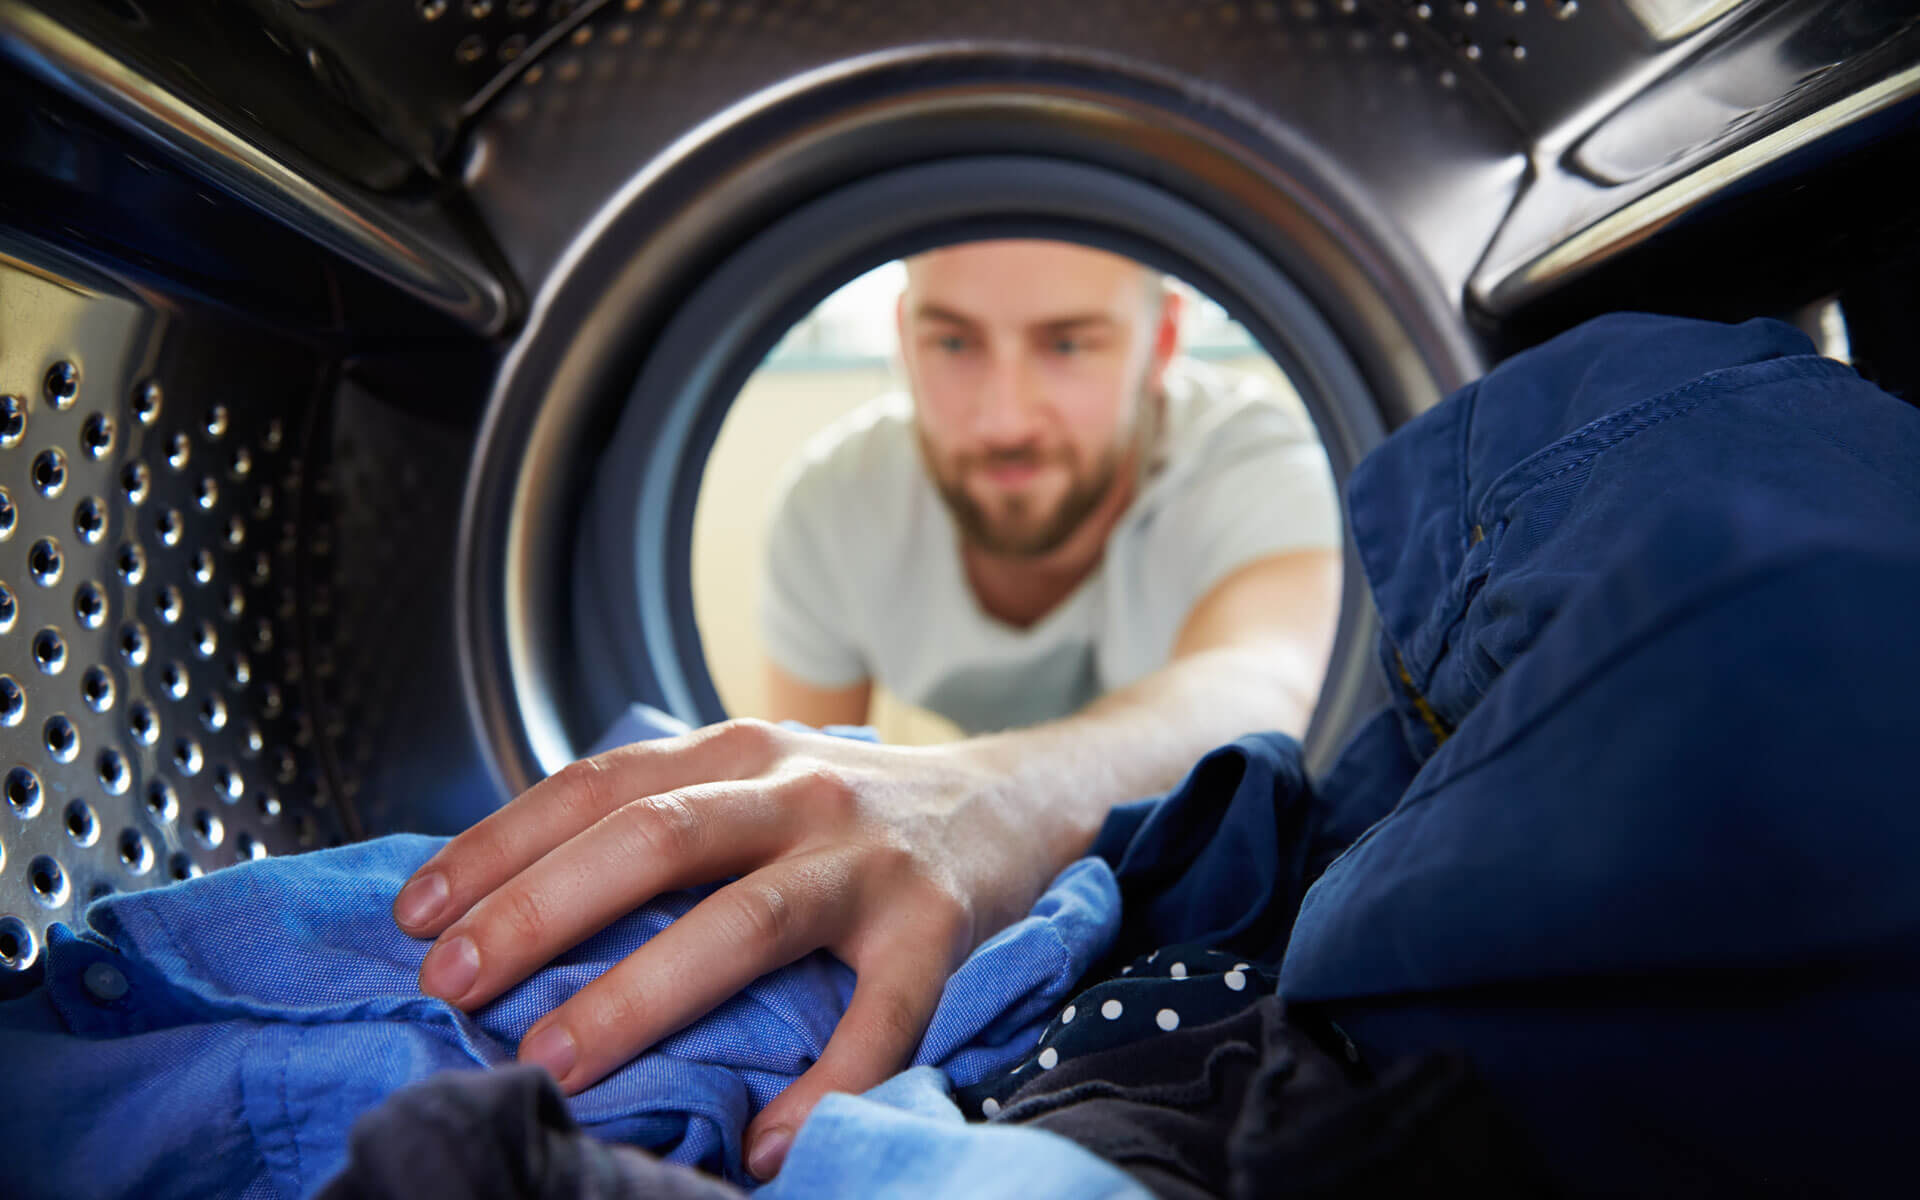 Man reaching into a tumble dryer